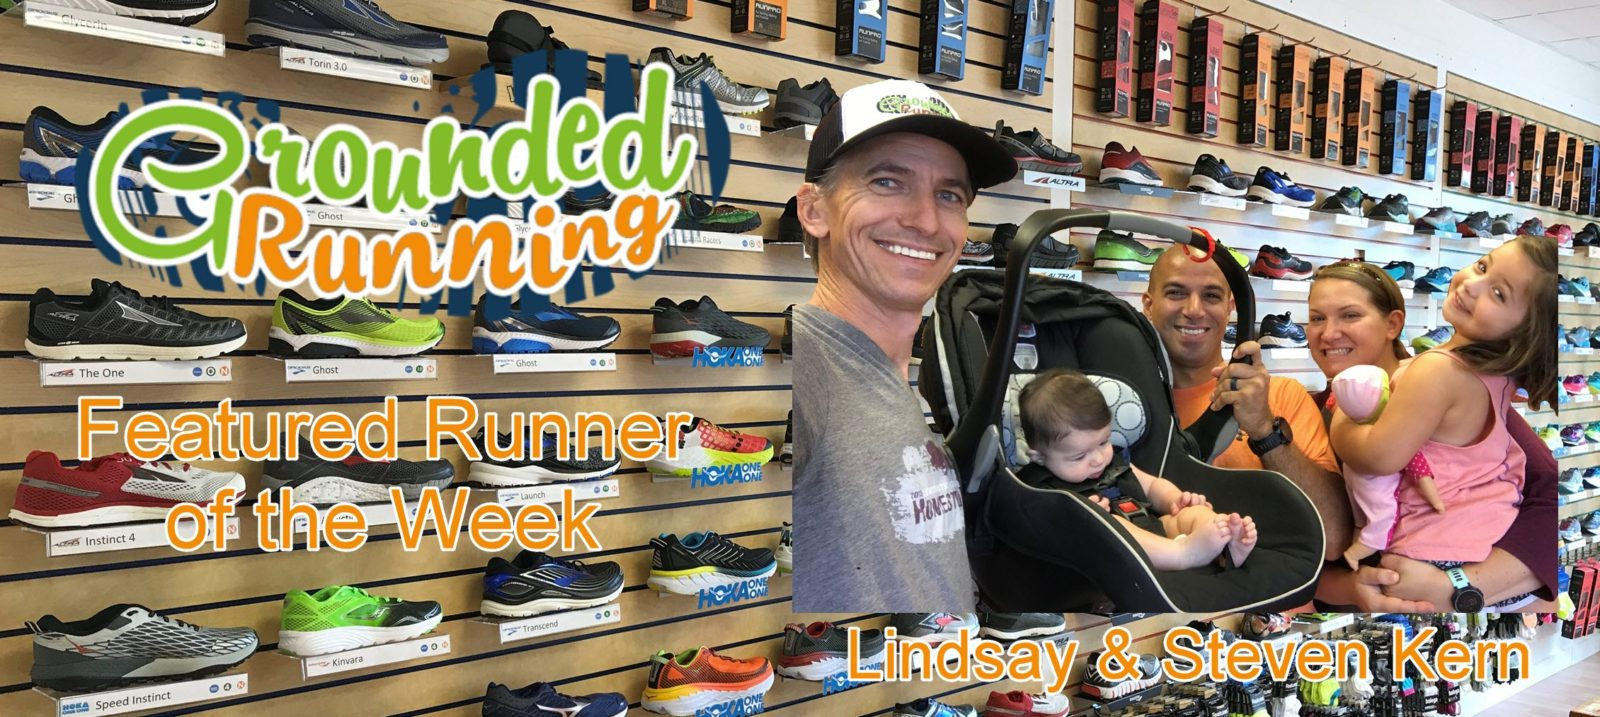 Lindsay & Steven Kern - Featured Runners of the Week - Grounded Running